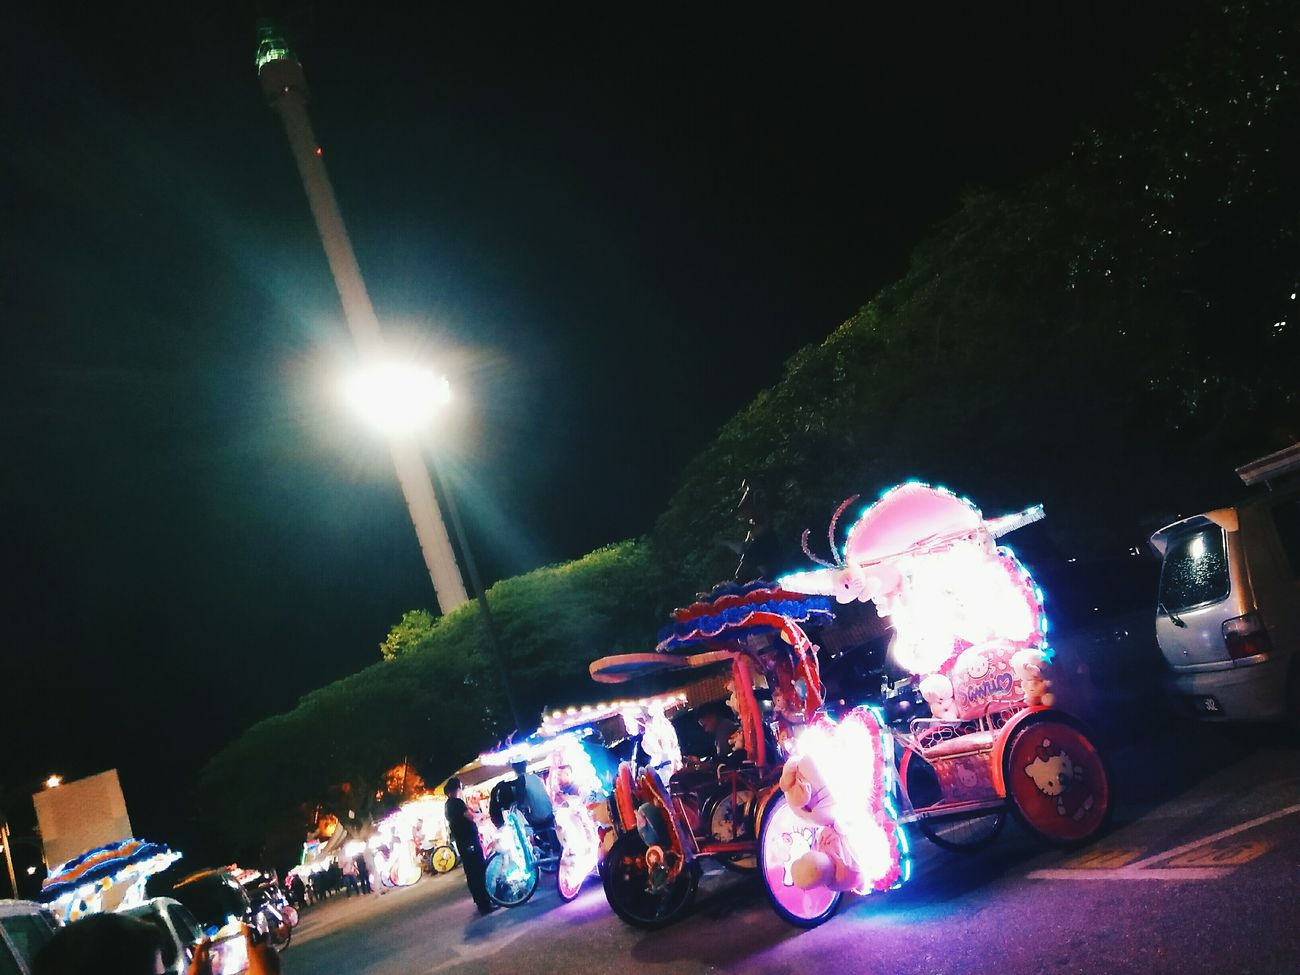 Menara Taming Sari in Melaka Town💃💕 Night Outdoors Traveldiaries Nightlife Traveling Instagramer Vscomalaysia Vscocam VSCO Vscogood Modern Melaka World Heritage City Menara Taming Sari Melaka , Malaysia Melaka Malaysia The World Heritage Beca Traditional Adapted To The City Day Traveling Home For The Holidays Relaxing Moments Choice Outdoorlife